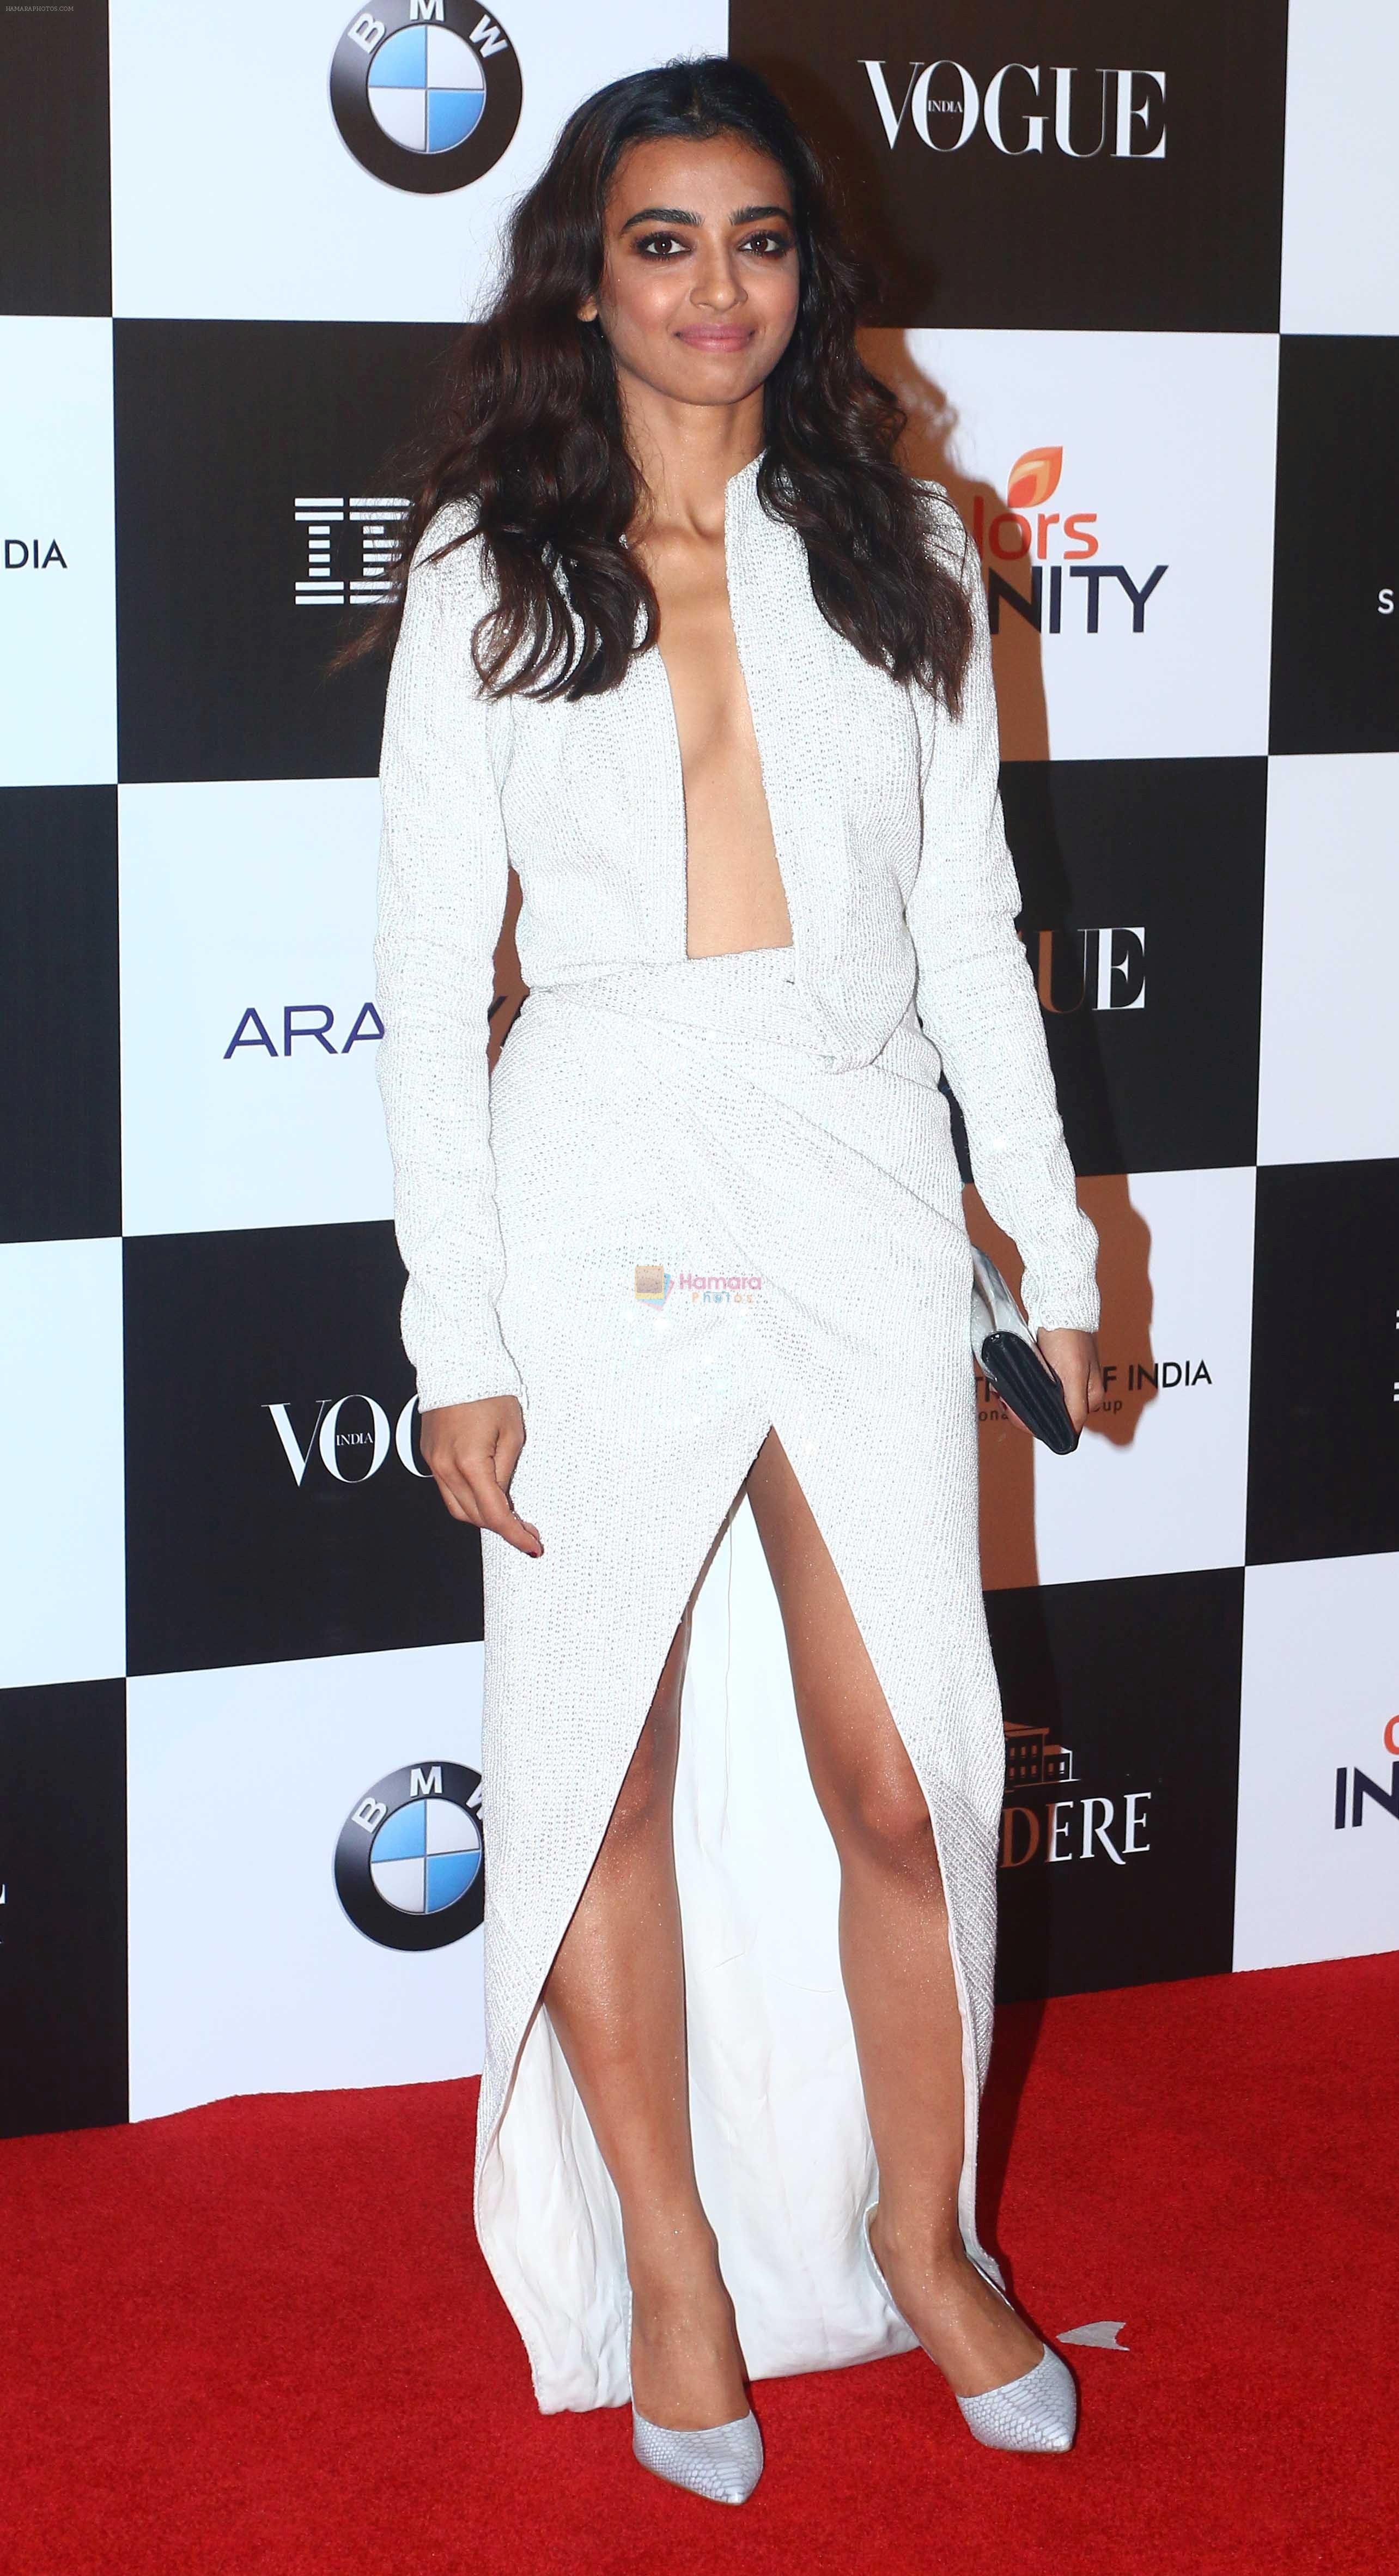 Radhika Apte at the Red Carpet Of Vogue Women Of The Year 2017 on 25th Sept 2017